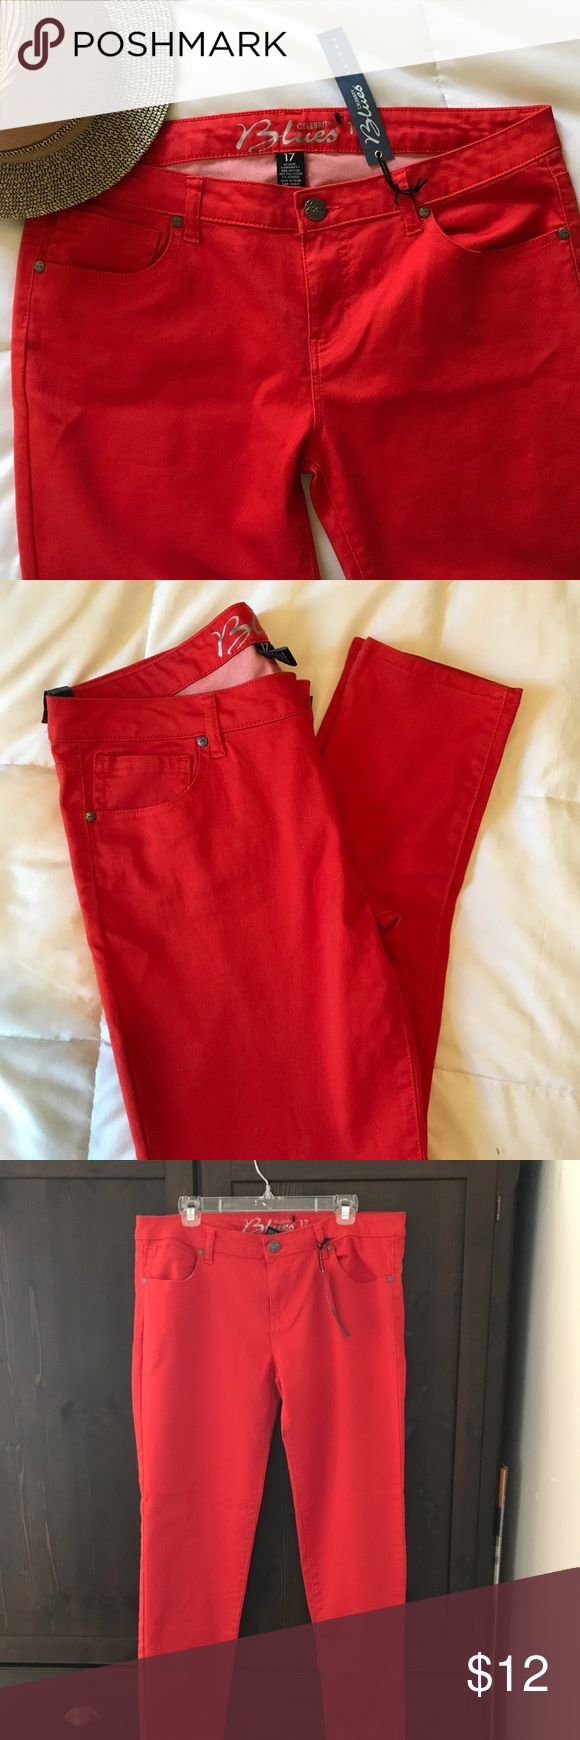 "Orange Red Lightweight Jean Pant! These are super cute red but a cool orange red skinny pant. Brand new w tags. Tag says 17 in juniors which is a woman's size 14. 29"" inseam (long) Pants Straight Leg"